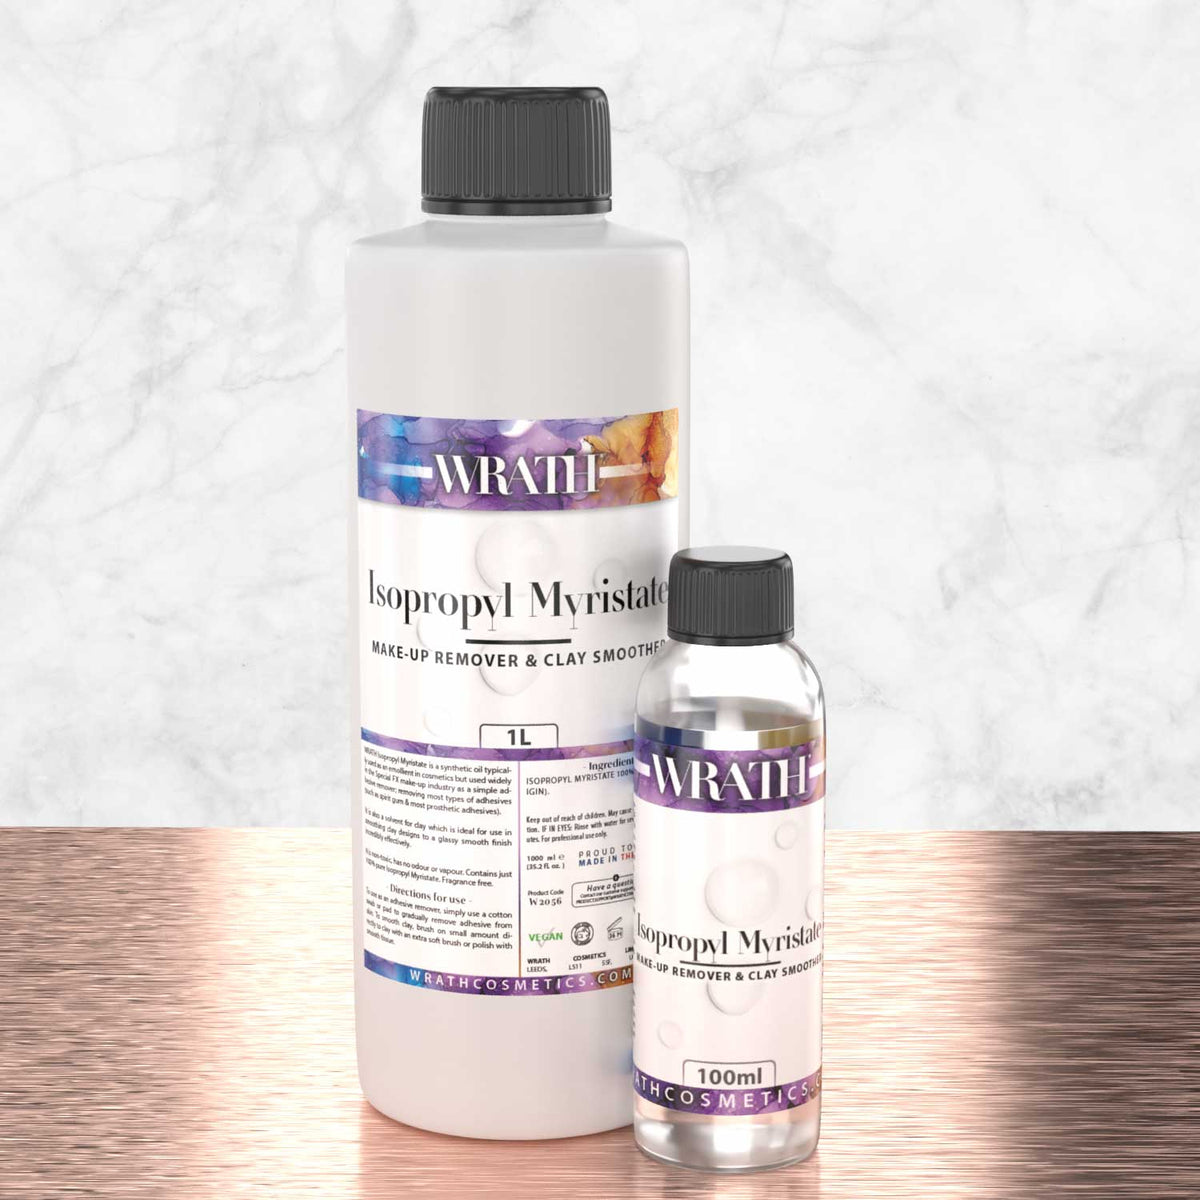 WRATH Isopropyl Myristate (Remover & Clay Smoother)